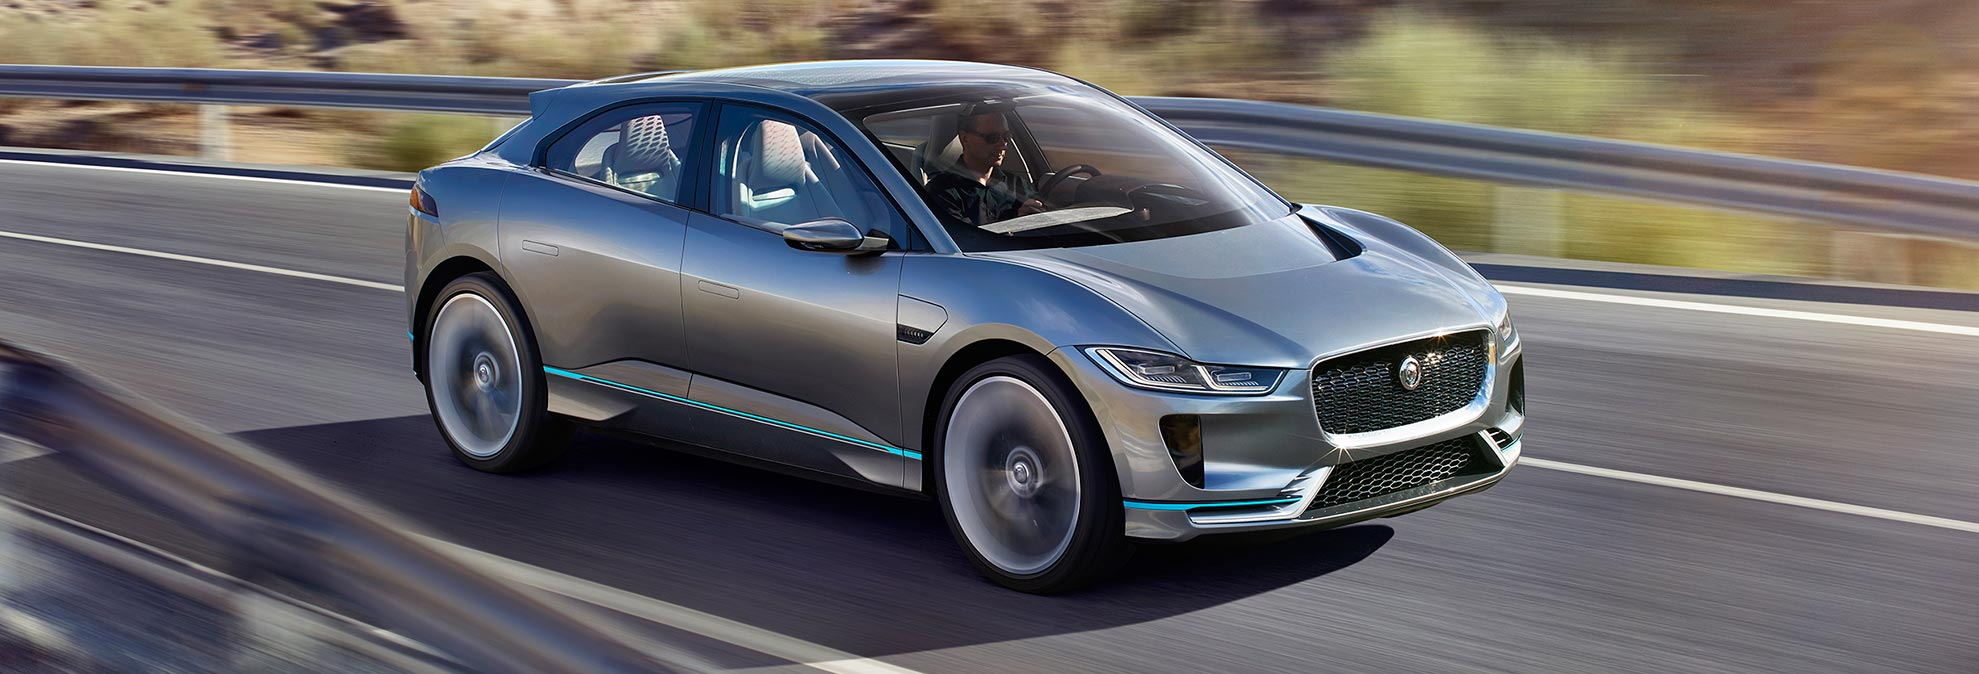 Preview Jaguar I Pace Electric Car Consumer Reports